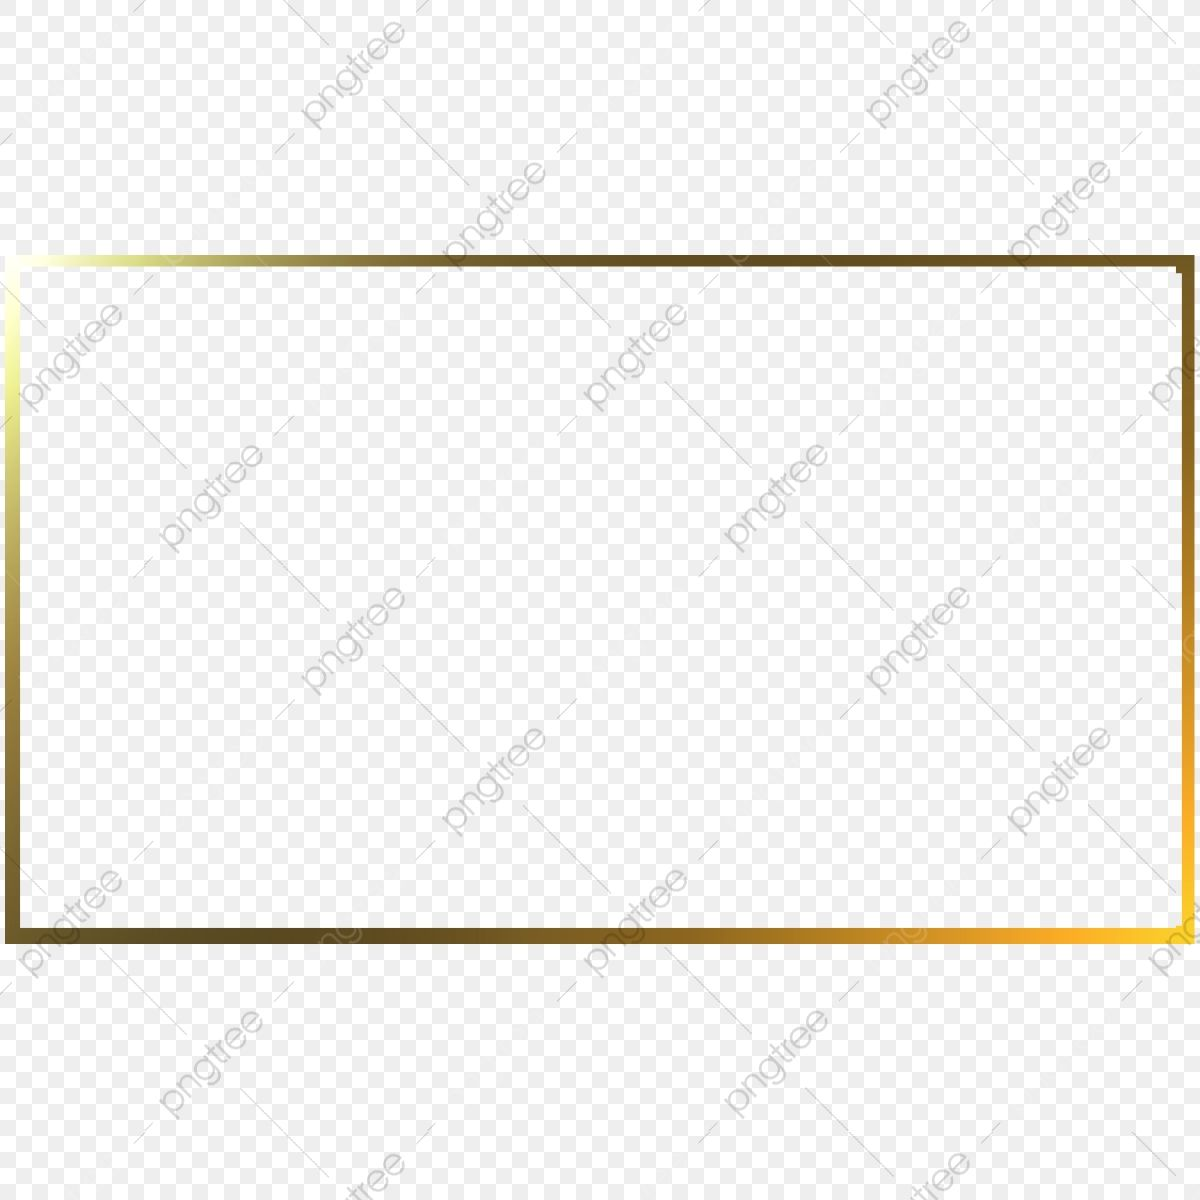 Rectangle Golden Frame Border Photo Clipart Rectangle Rectangle Border Png Transparent Clipart Image And Psd File For Free Download Photo Clipart Frame Clipart Shapes Images